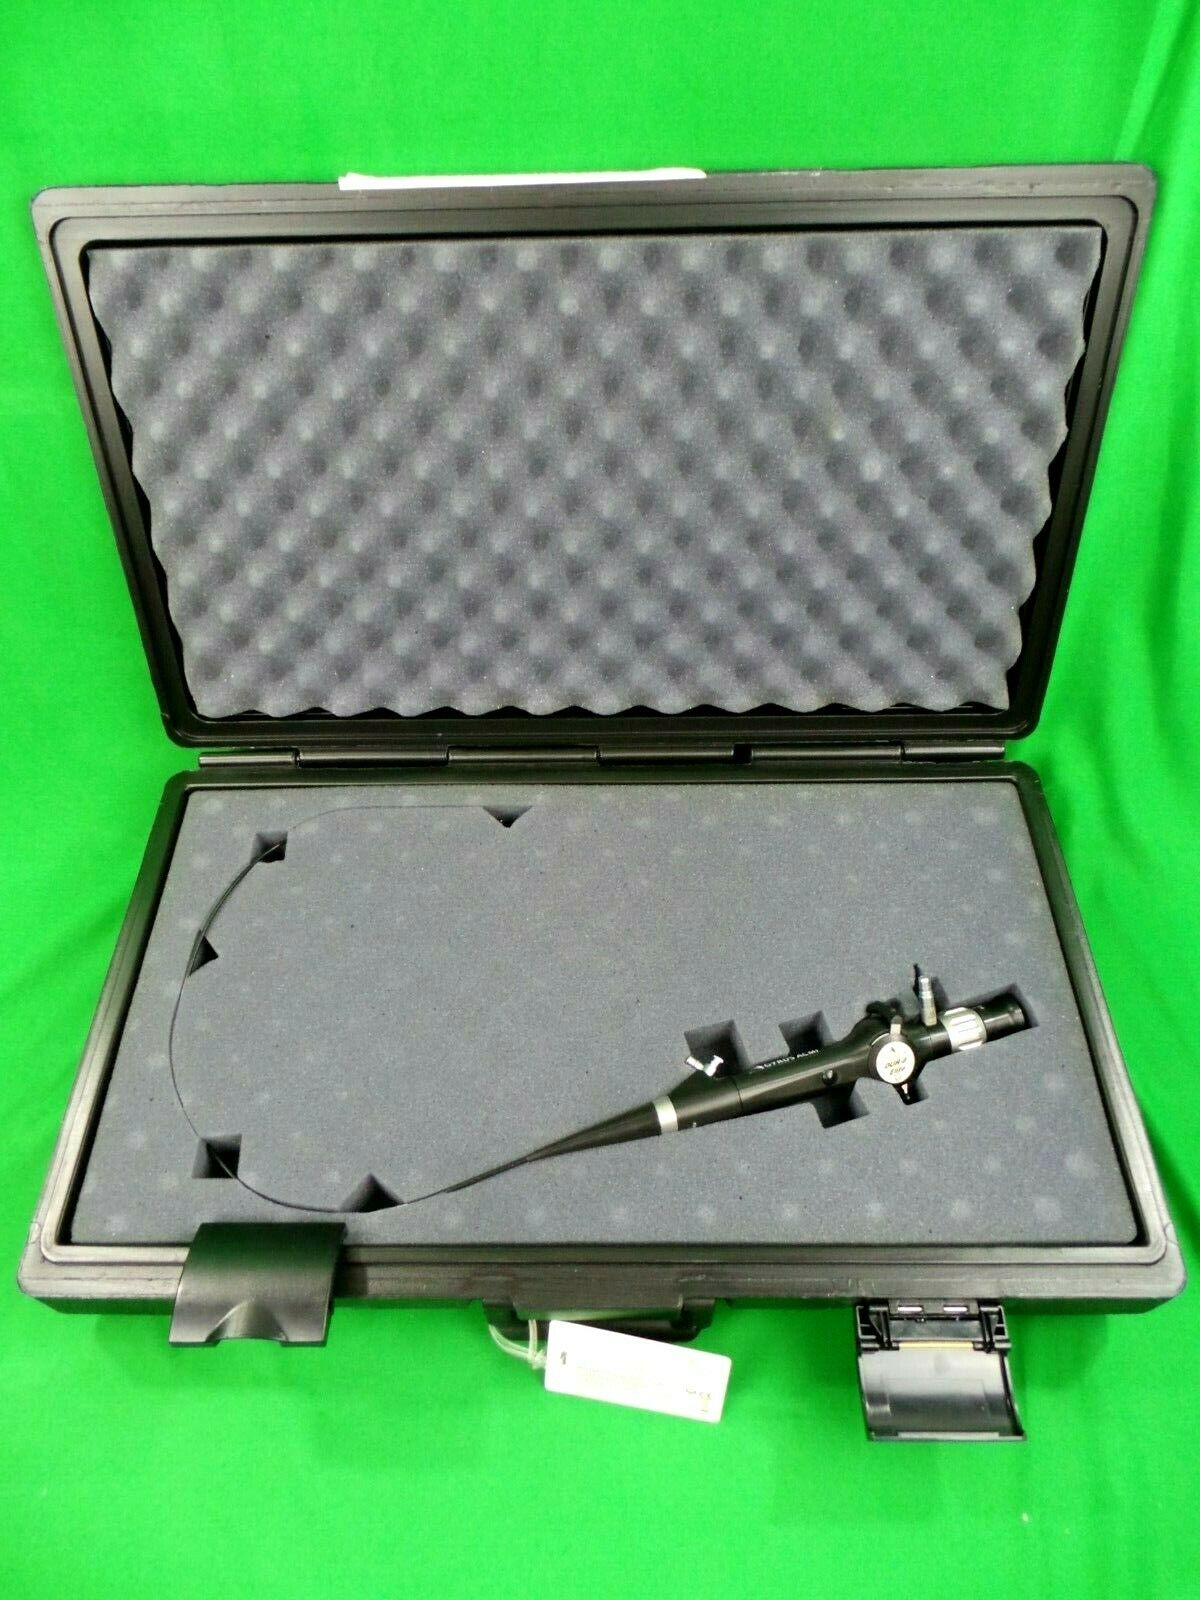 Gyrus ACMI DUR-8 Elite Flexible Durable Ureteroscope System